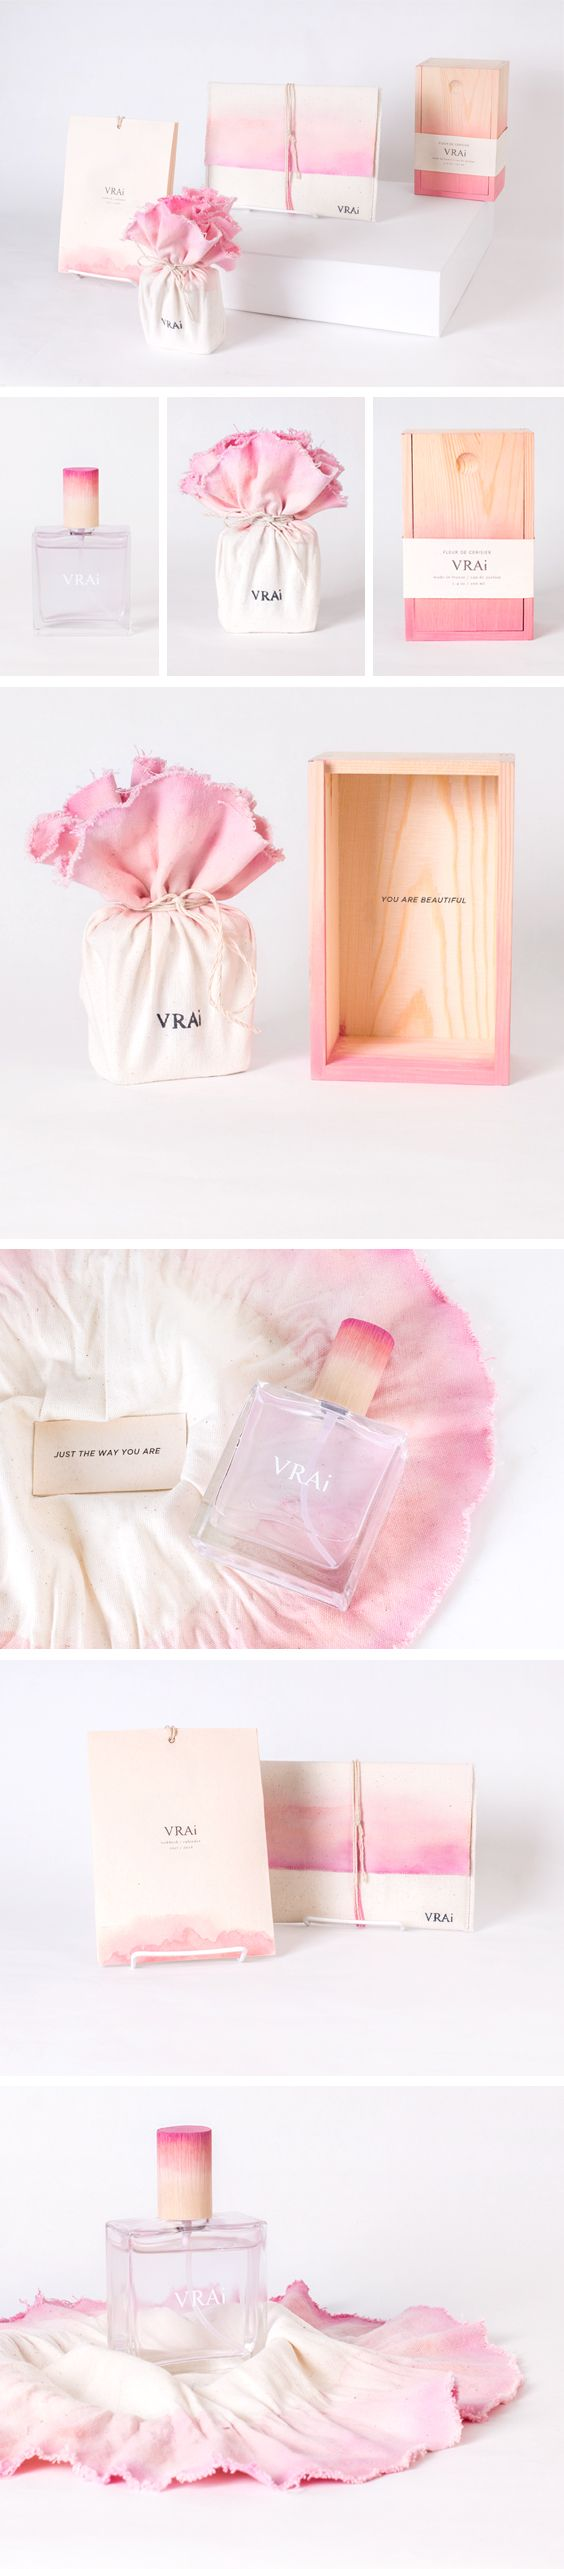 VRAi body fragrance packaging concept - cherry blossom scent.